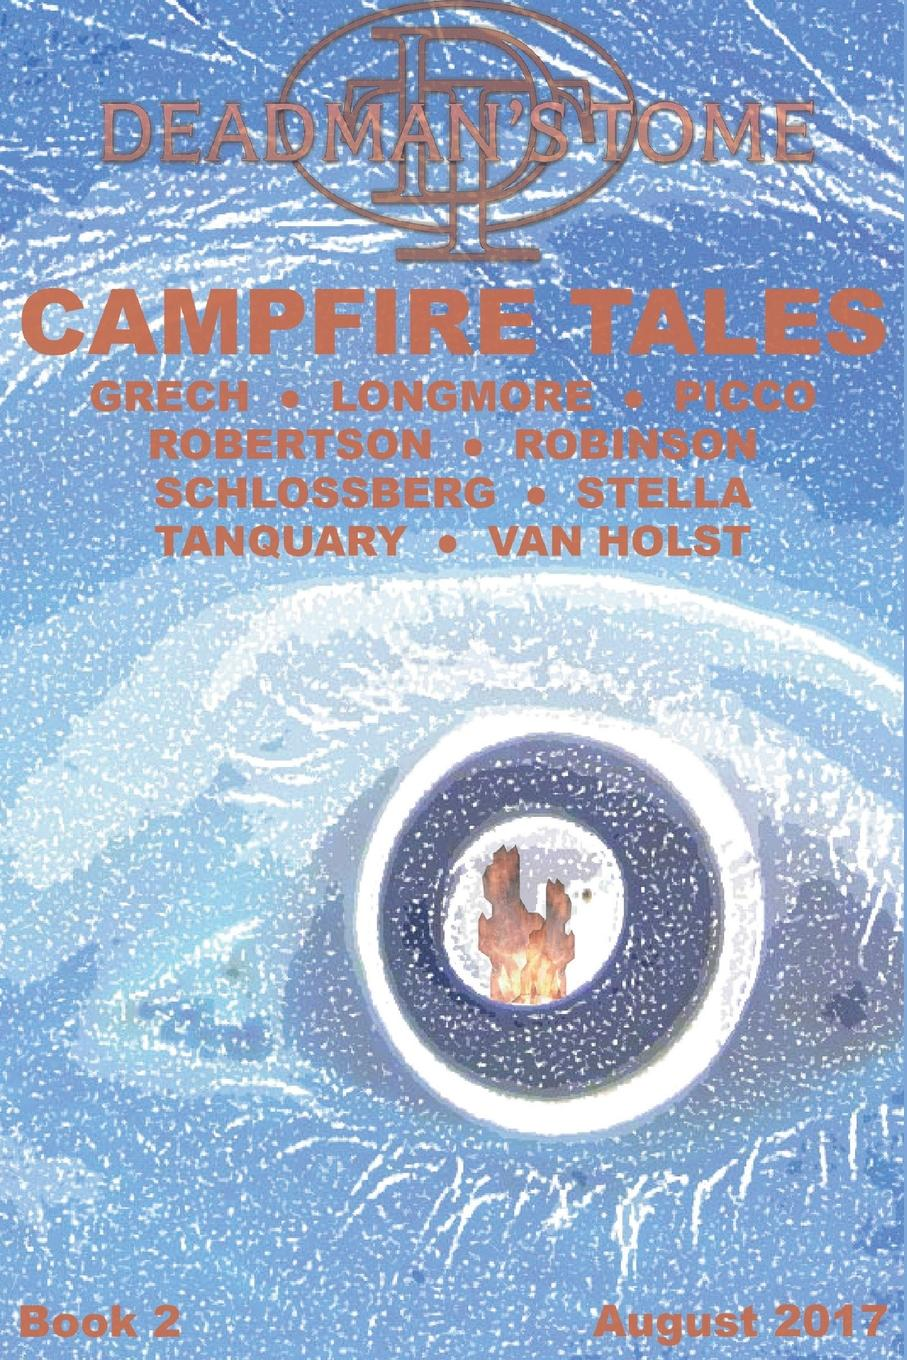 Amy Grech, James H Longmore, Michael Picco Deadman.s Tome Campfire Tales Book Two wilhelm hauff c a feiling the cold heart nose the dwarf two german tales